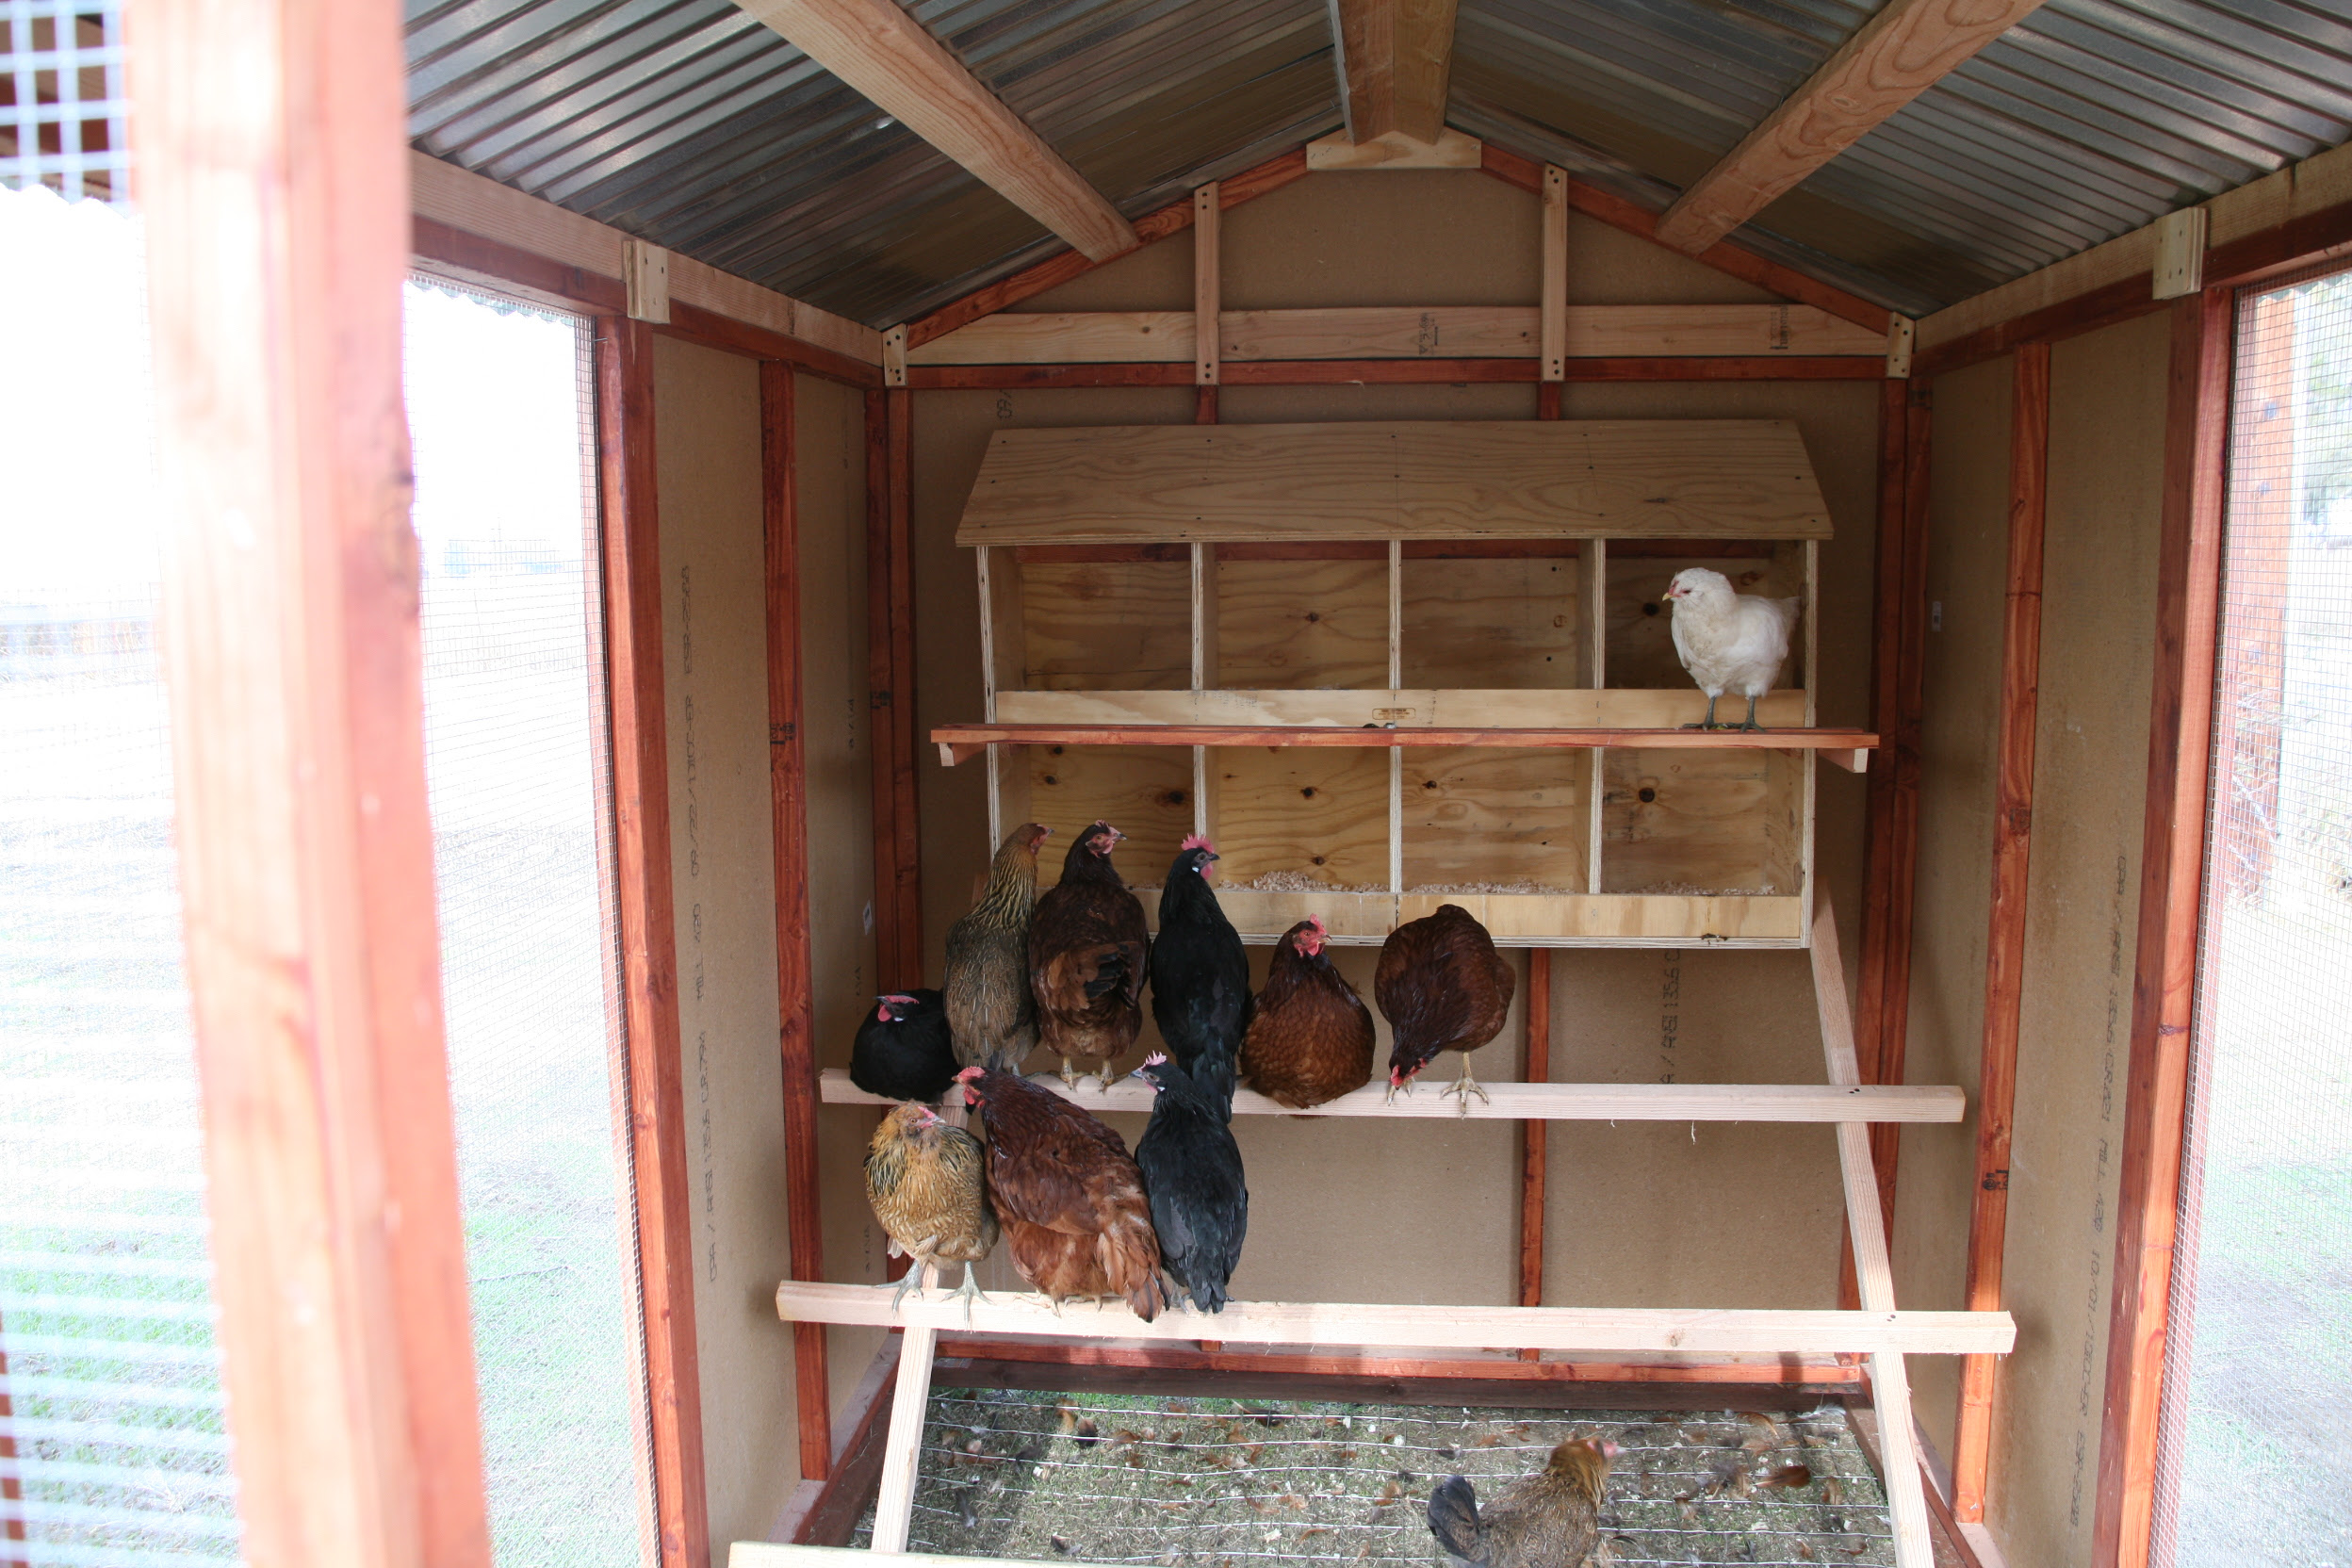 Coop guide: Most Used Inside of chicken coop designs